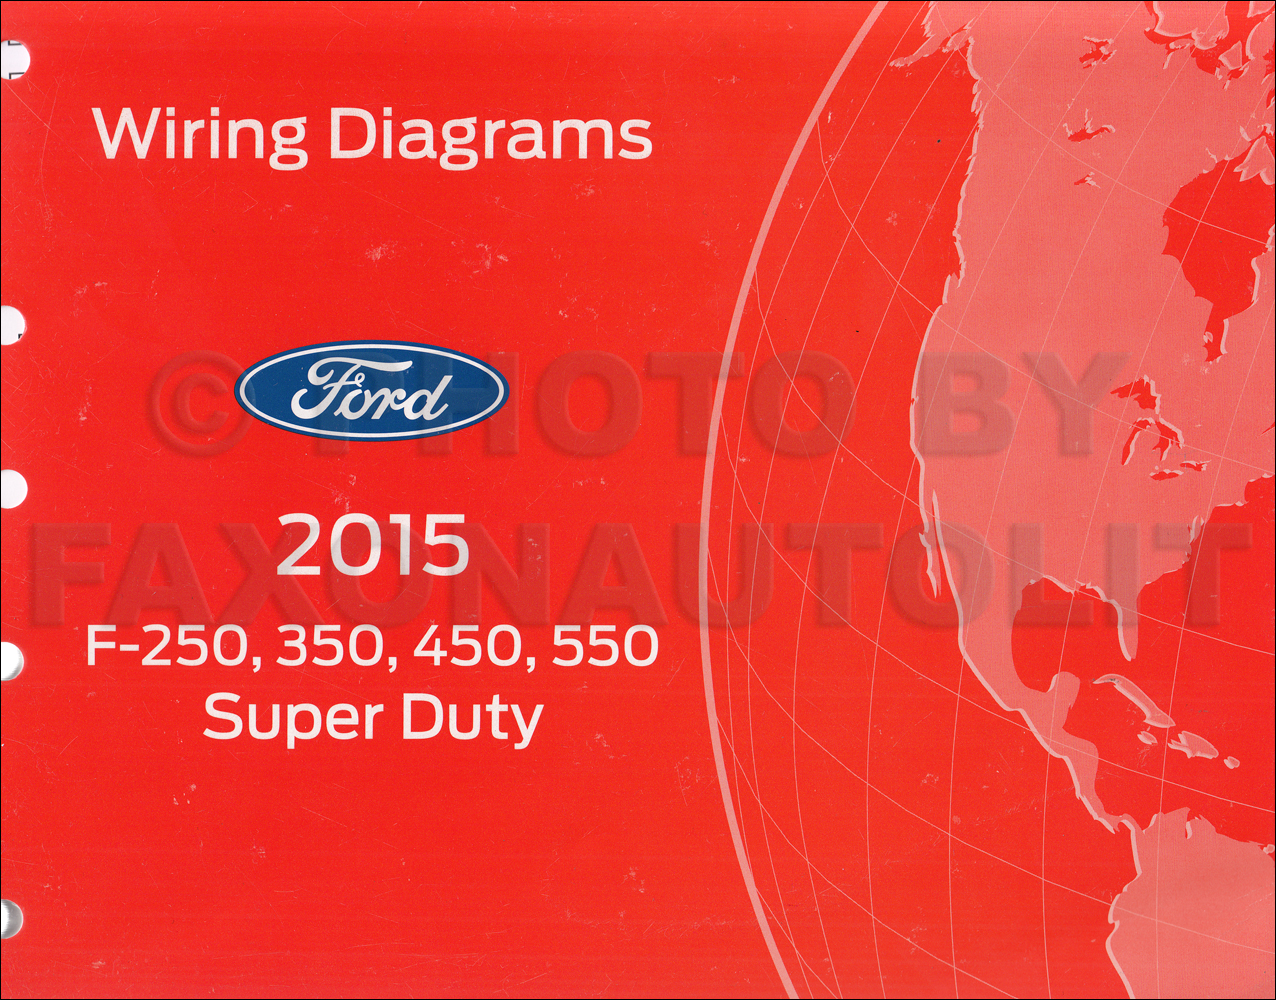 hight resolution of 2015 ford f250 f550 super dutytruck wiring diagram manual original 2015 ford f 250 brake controller wiring diagram 2015 ford f 250 wiring diagram